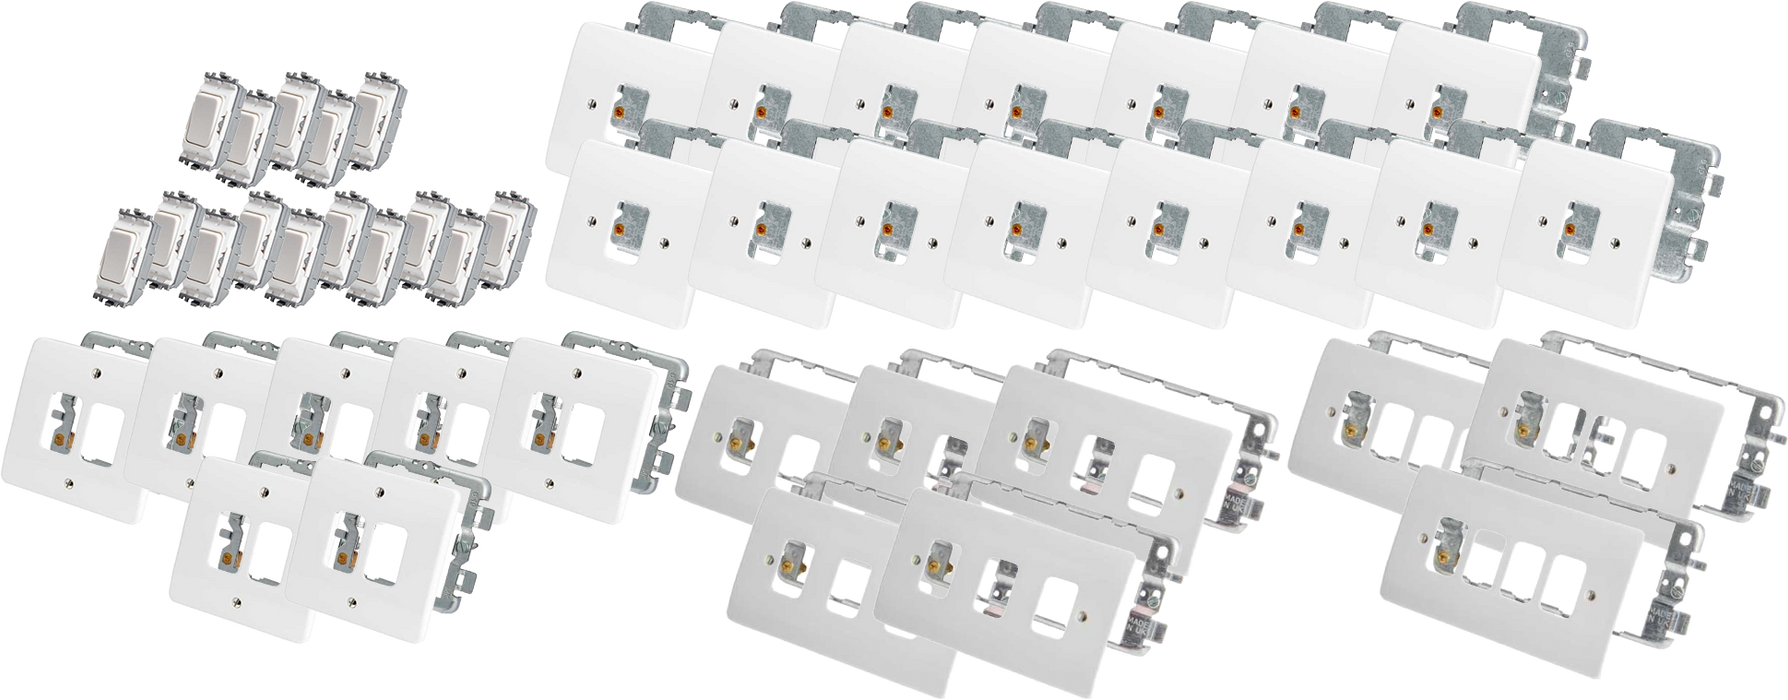 Momentary Switch Kit - 15 Pack